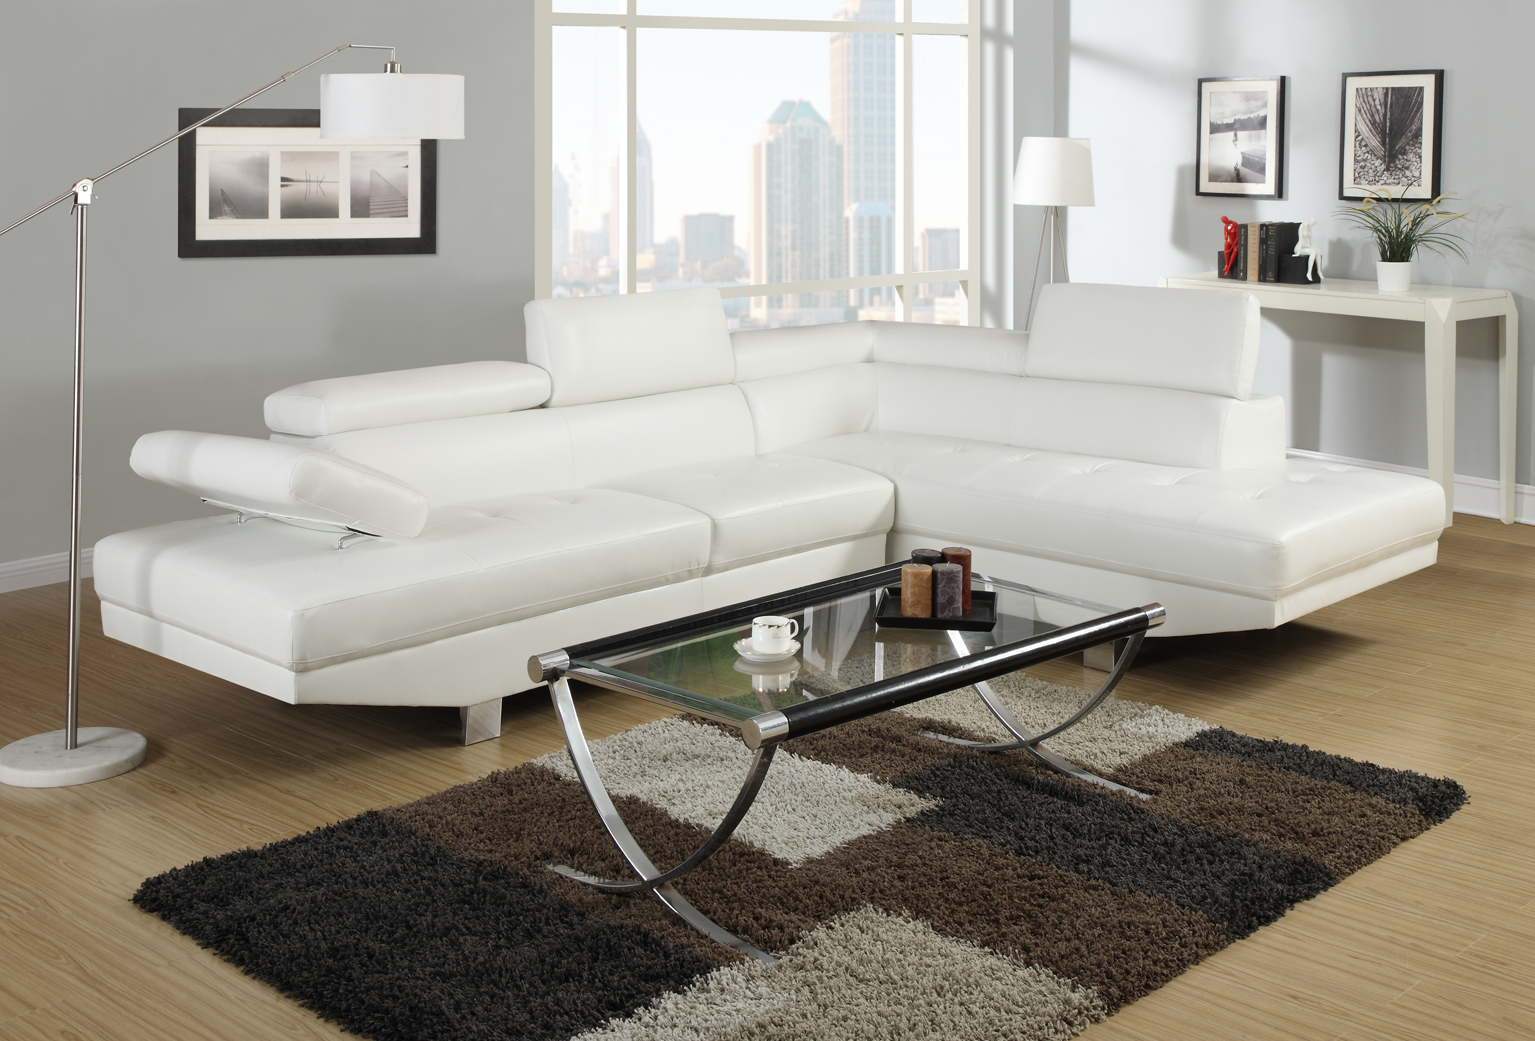 Living Room Sets Tampa Fl furniture distribution center in tampa, fl | whitepages